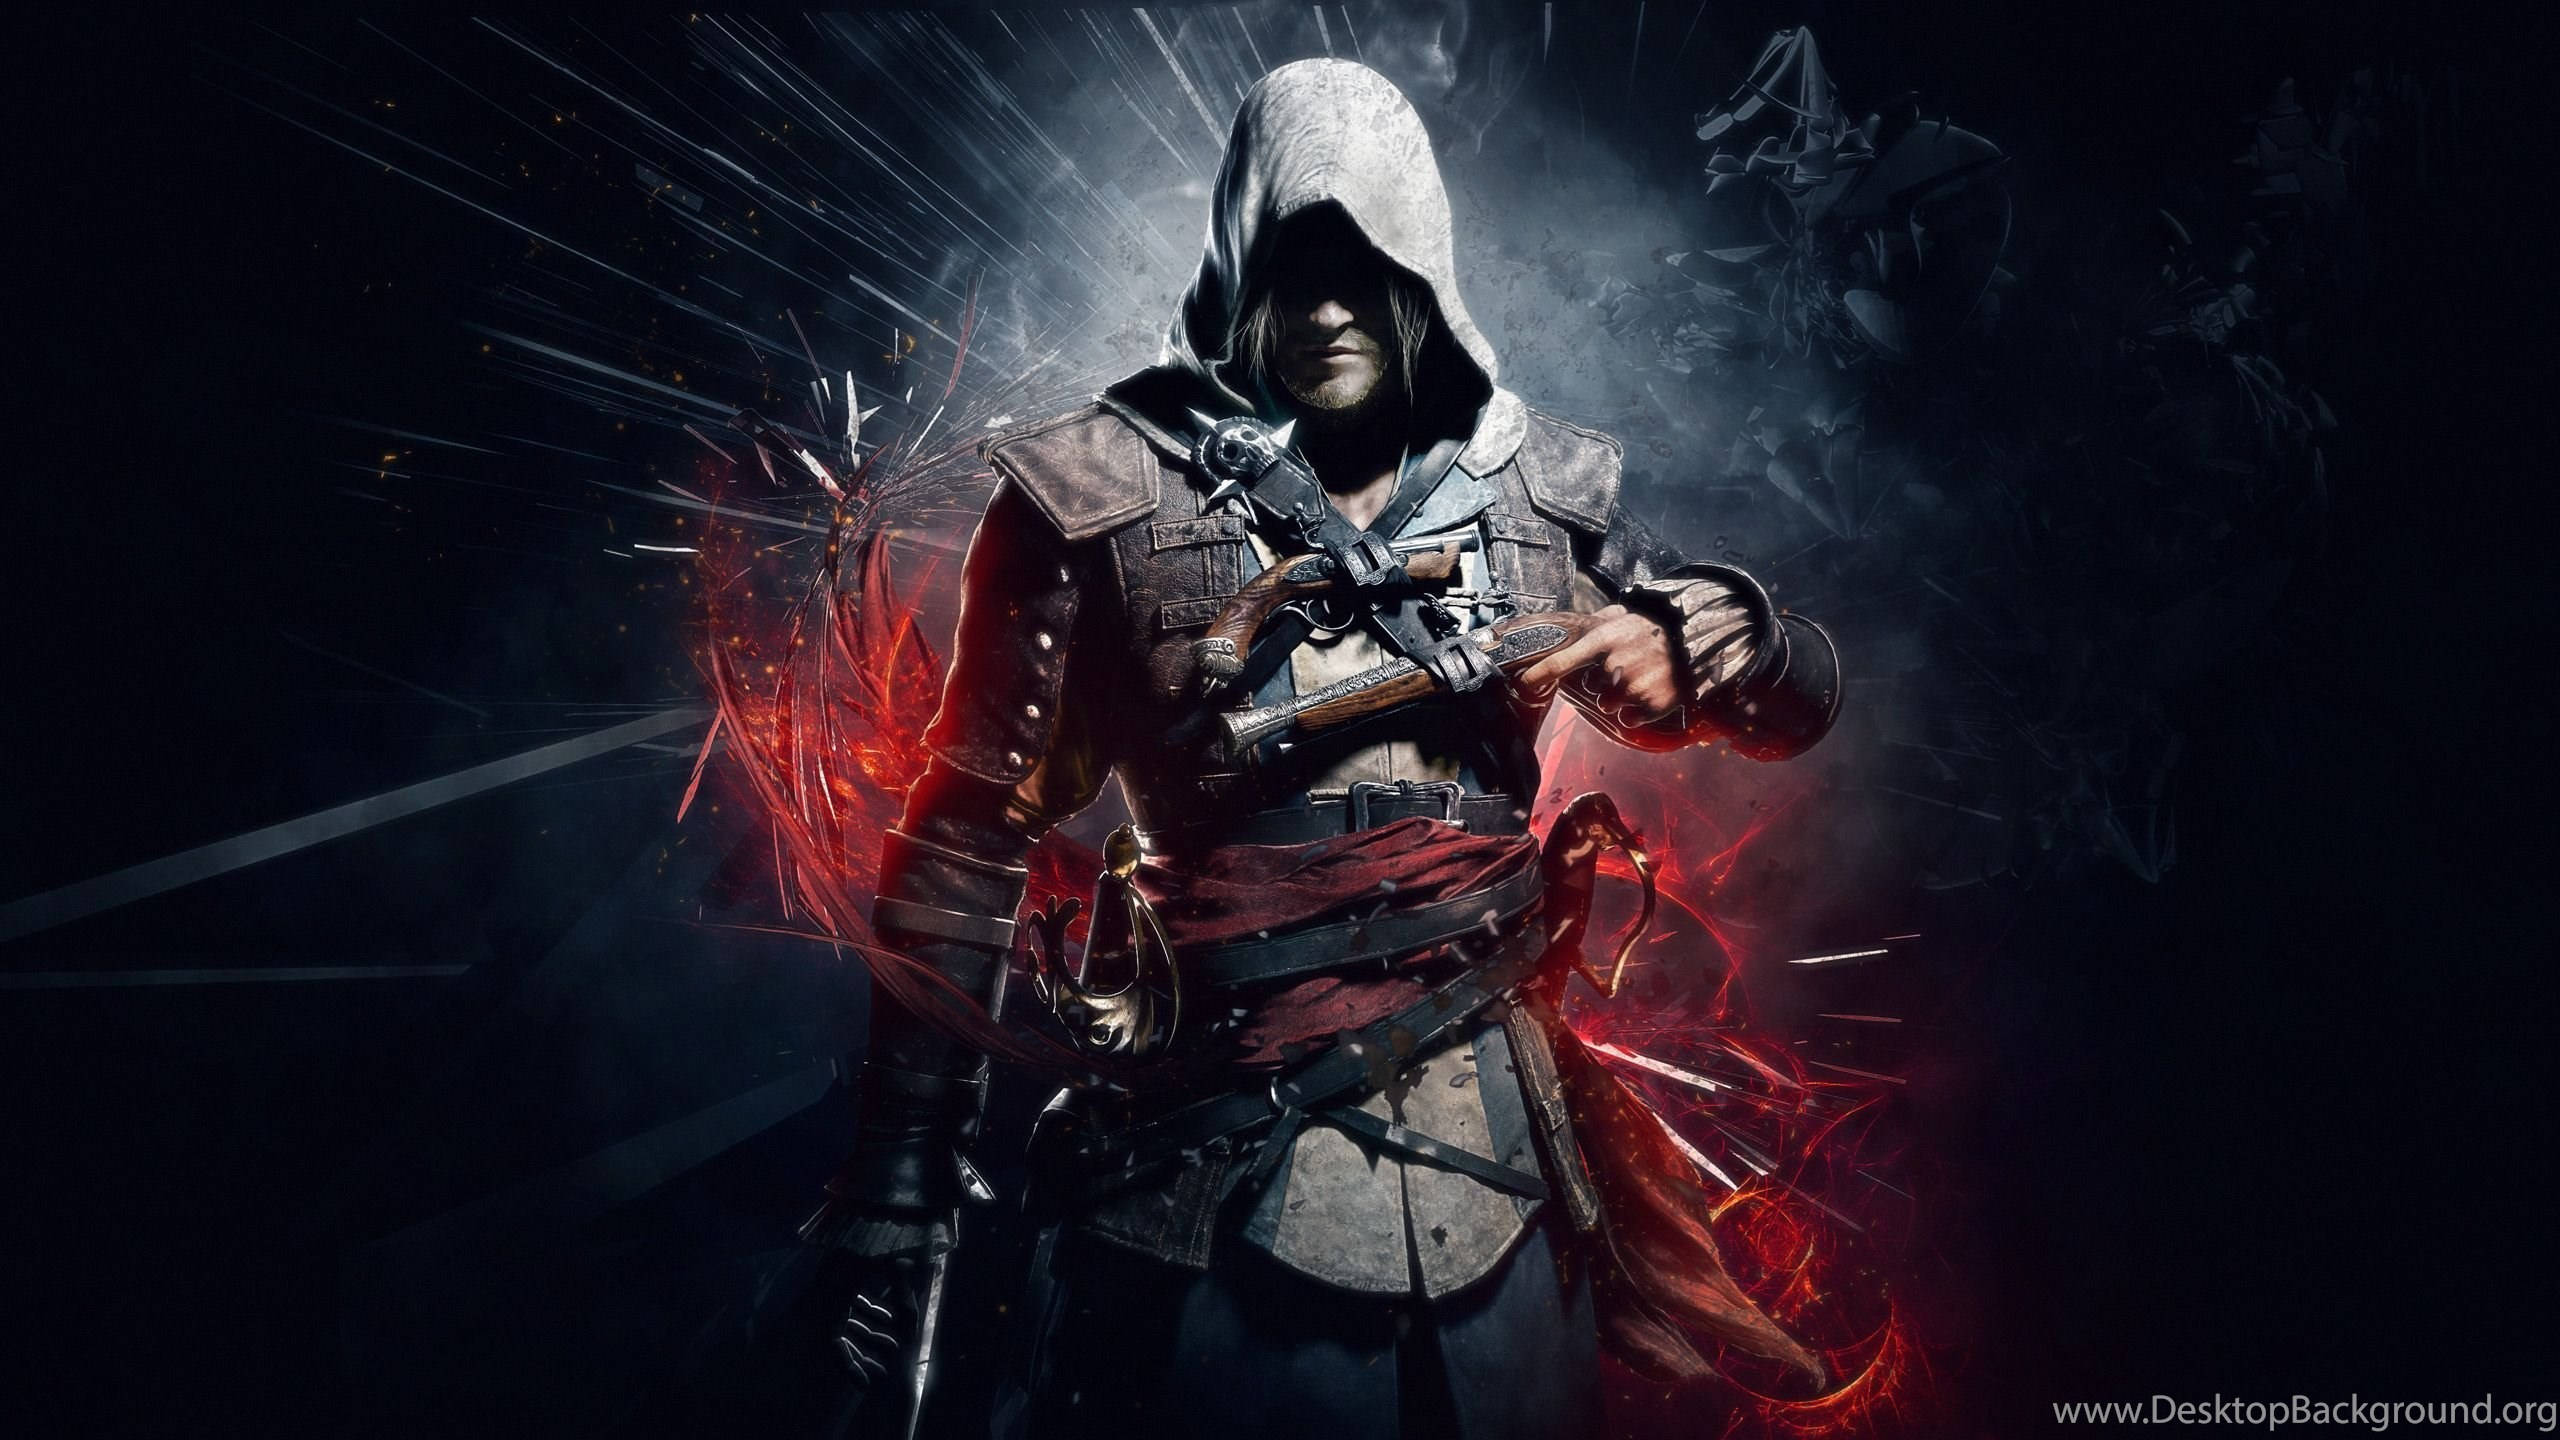 Top Assassins Creed 4 Wallpapers 1080p Images For Pinterest